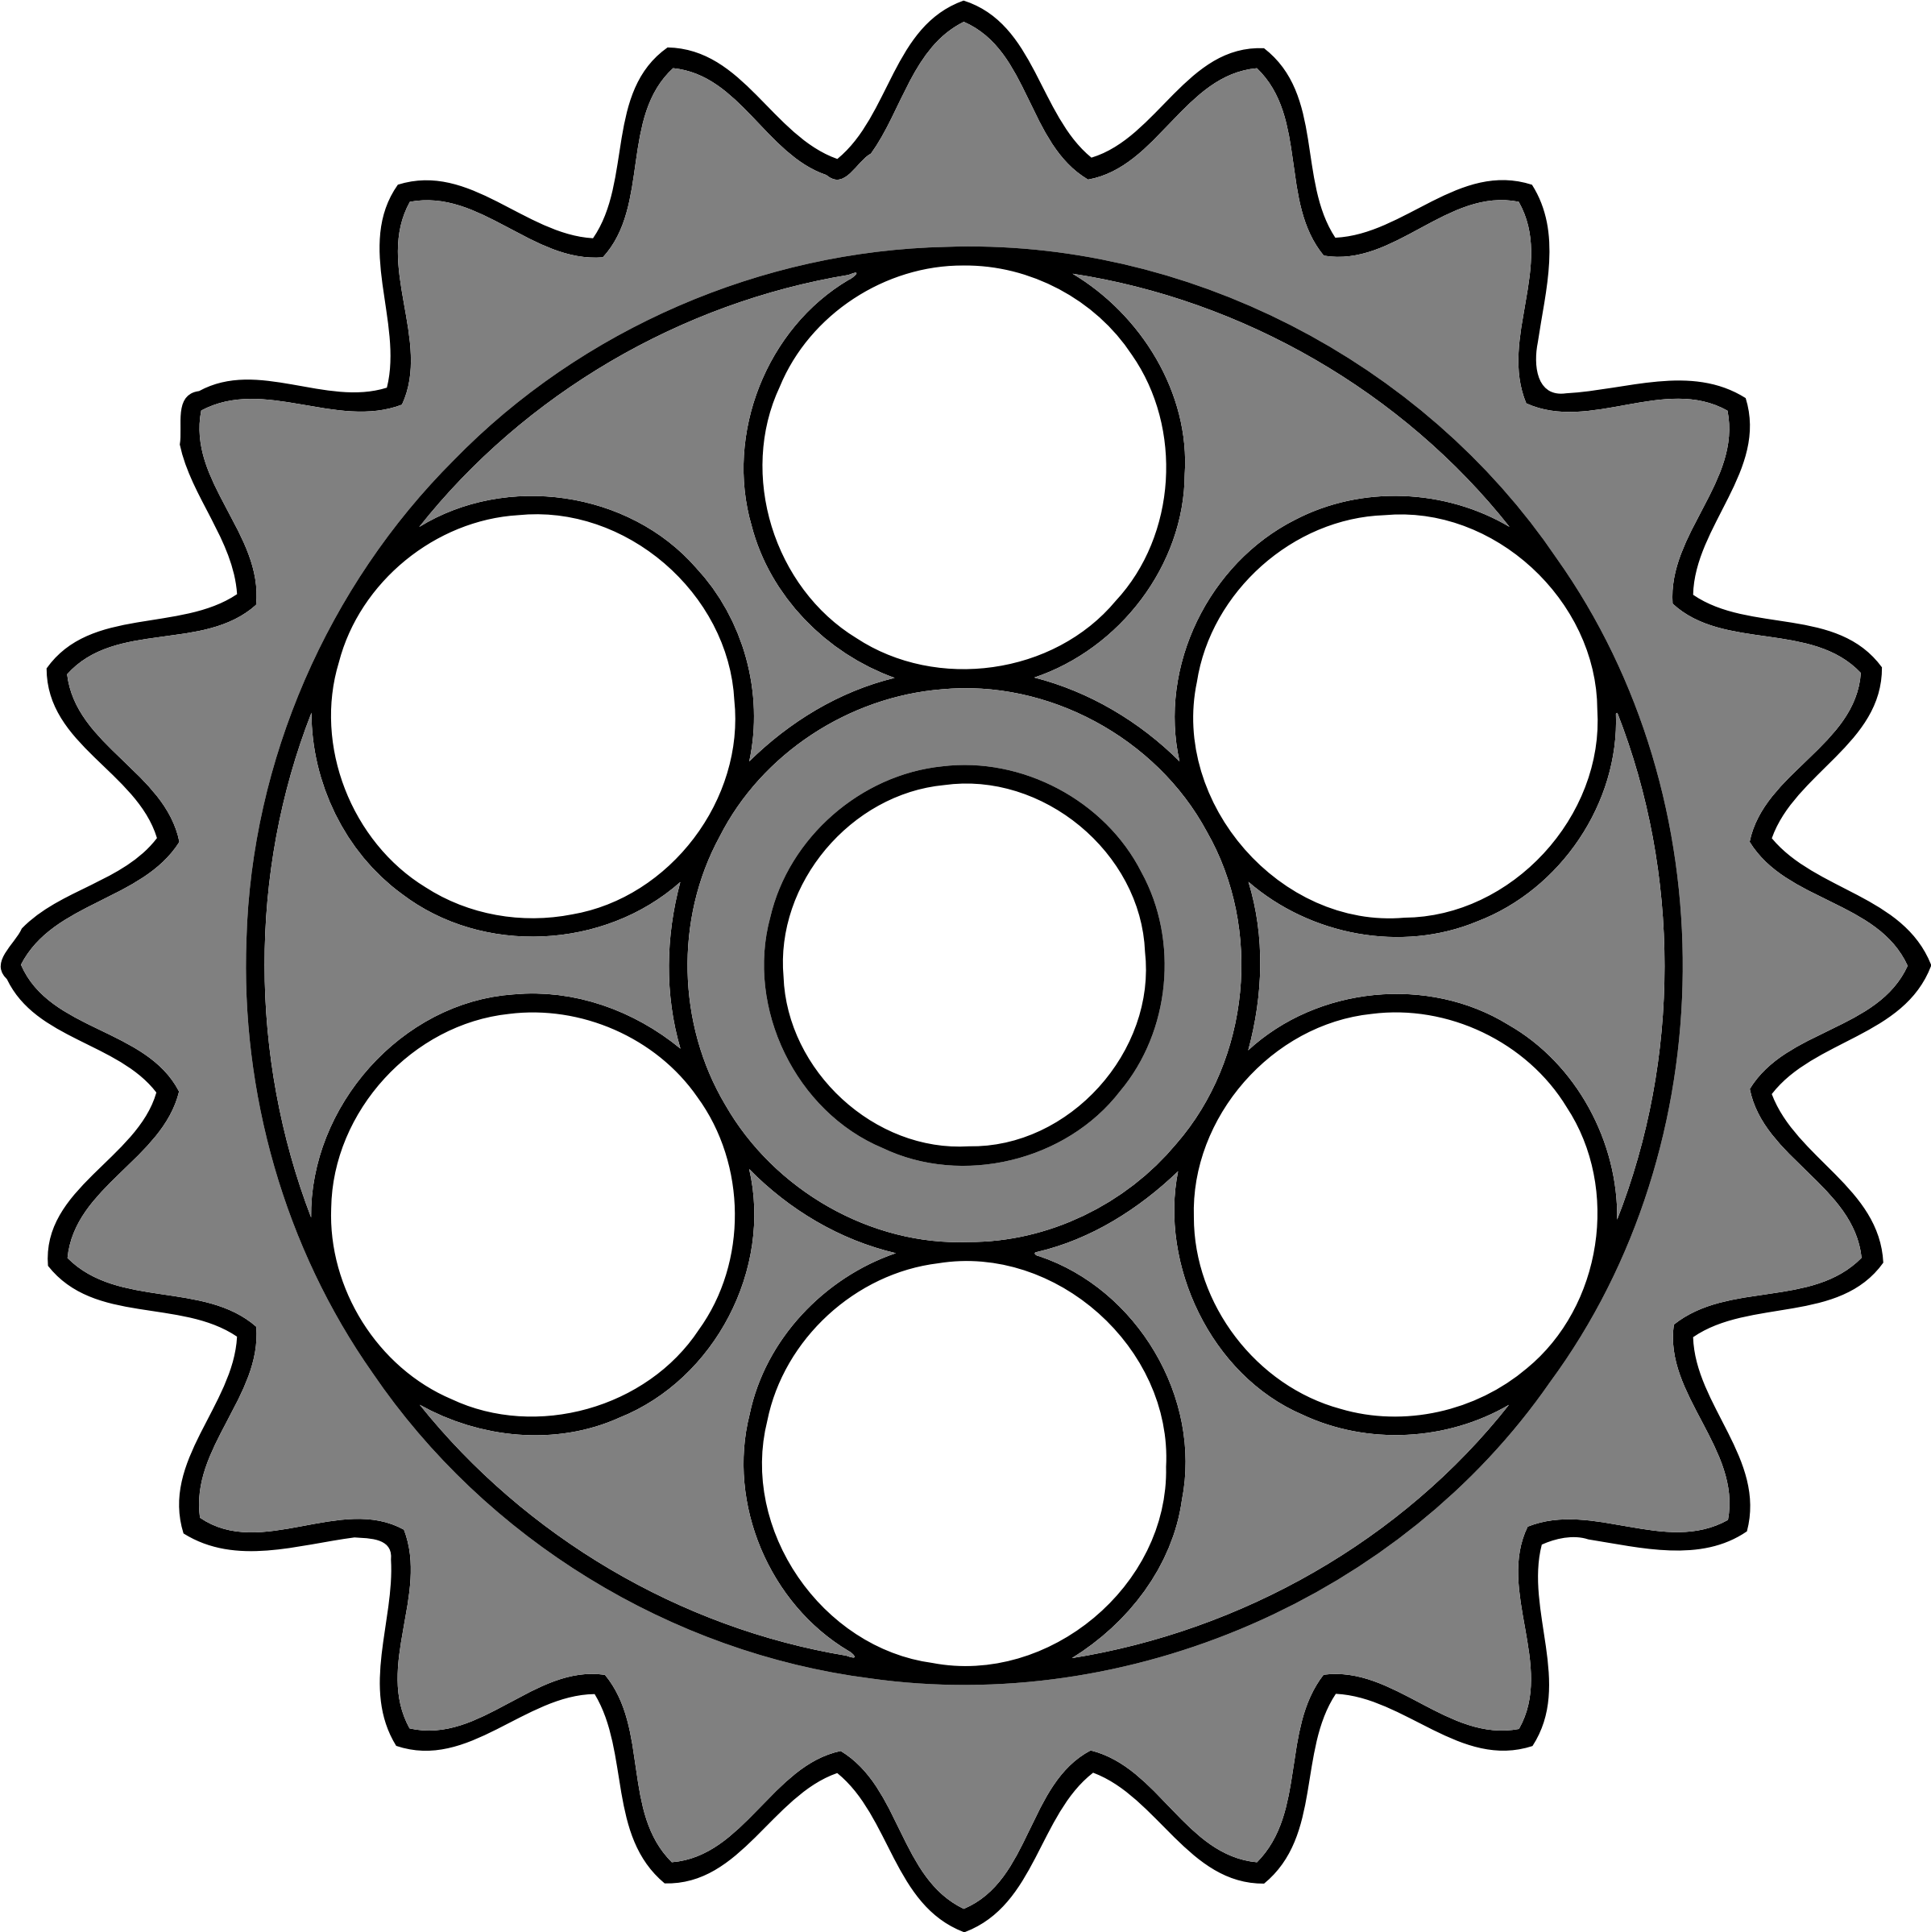 20-tooth gear with circular holes by Firkin